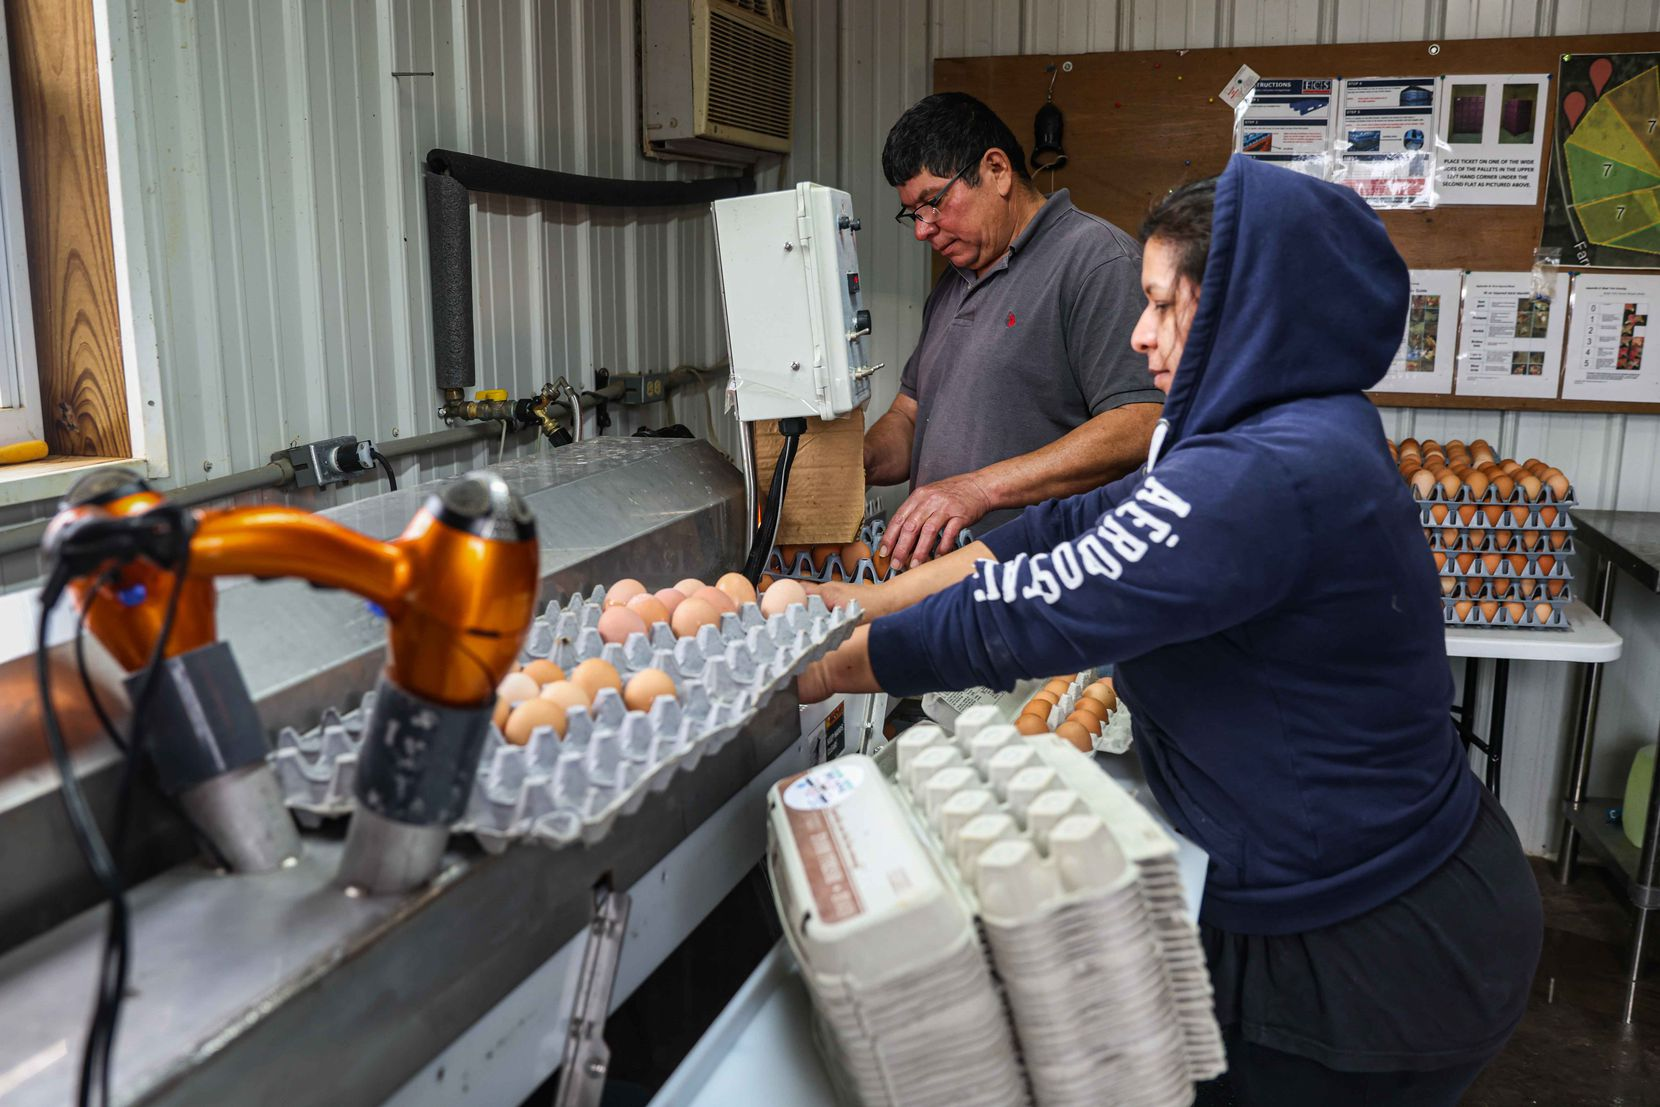 From left, Elmer Diaz and Roxana Lopez work on washing the collected eggs for packaging and distribution at Cedar Ridge Free Range in Pickton, Texas on Saturday, February 27, 2021. (Lola Gomez/The Dallas Morning News)